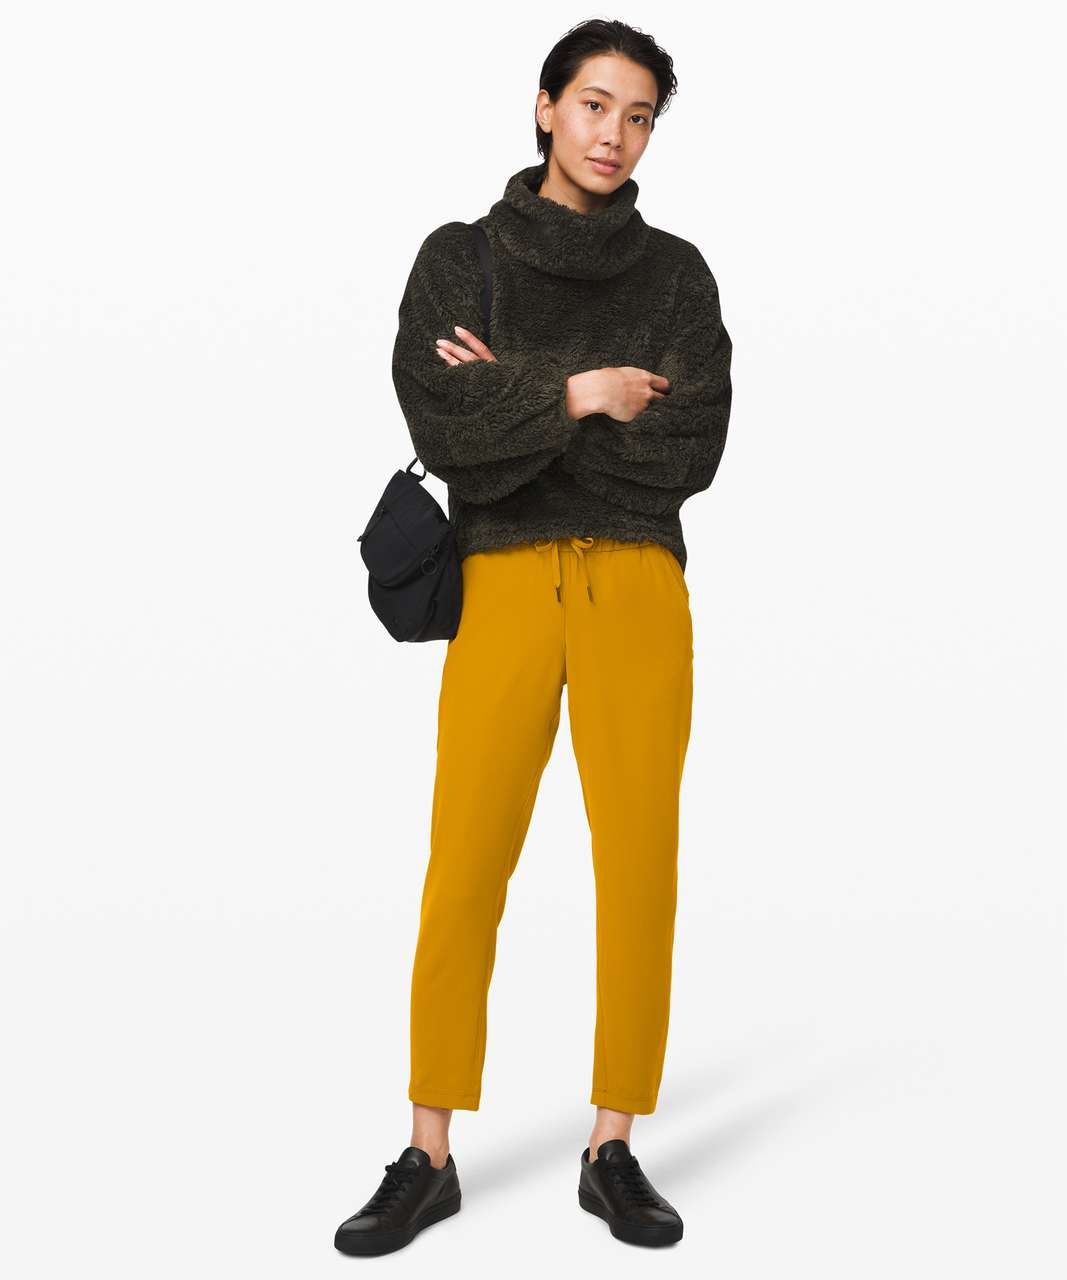 Lululemon On the Fly 7/8 Pant *Woven - Fools Gold